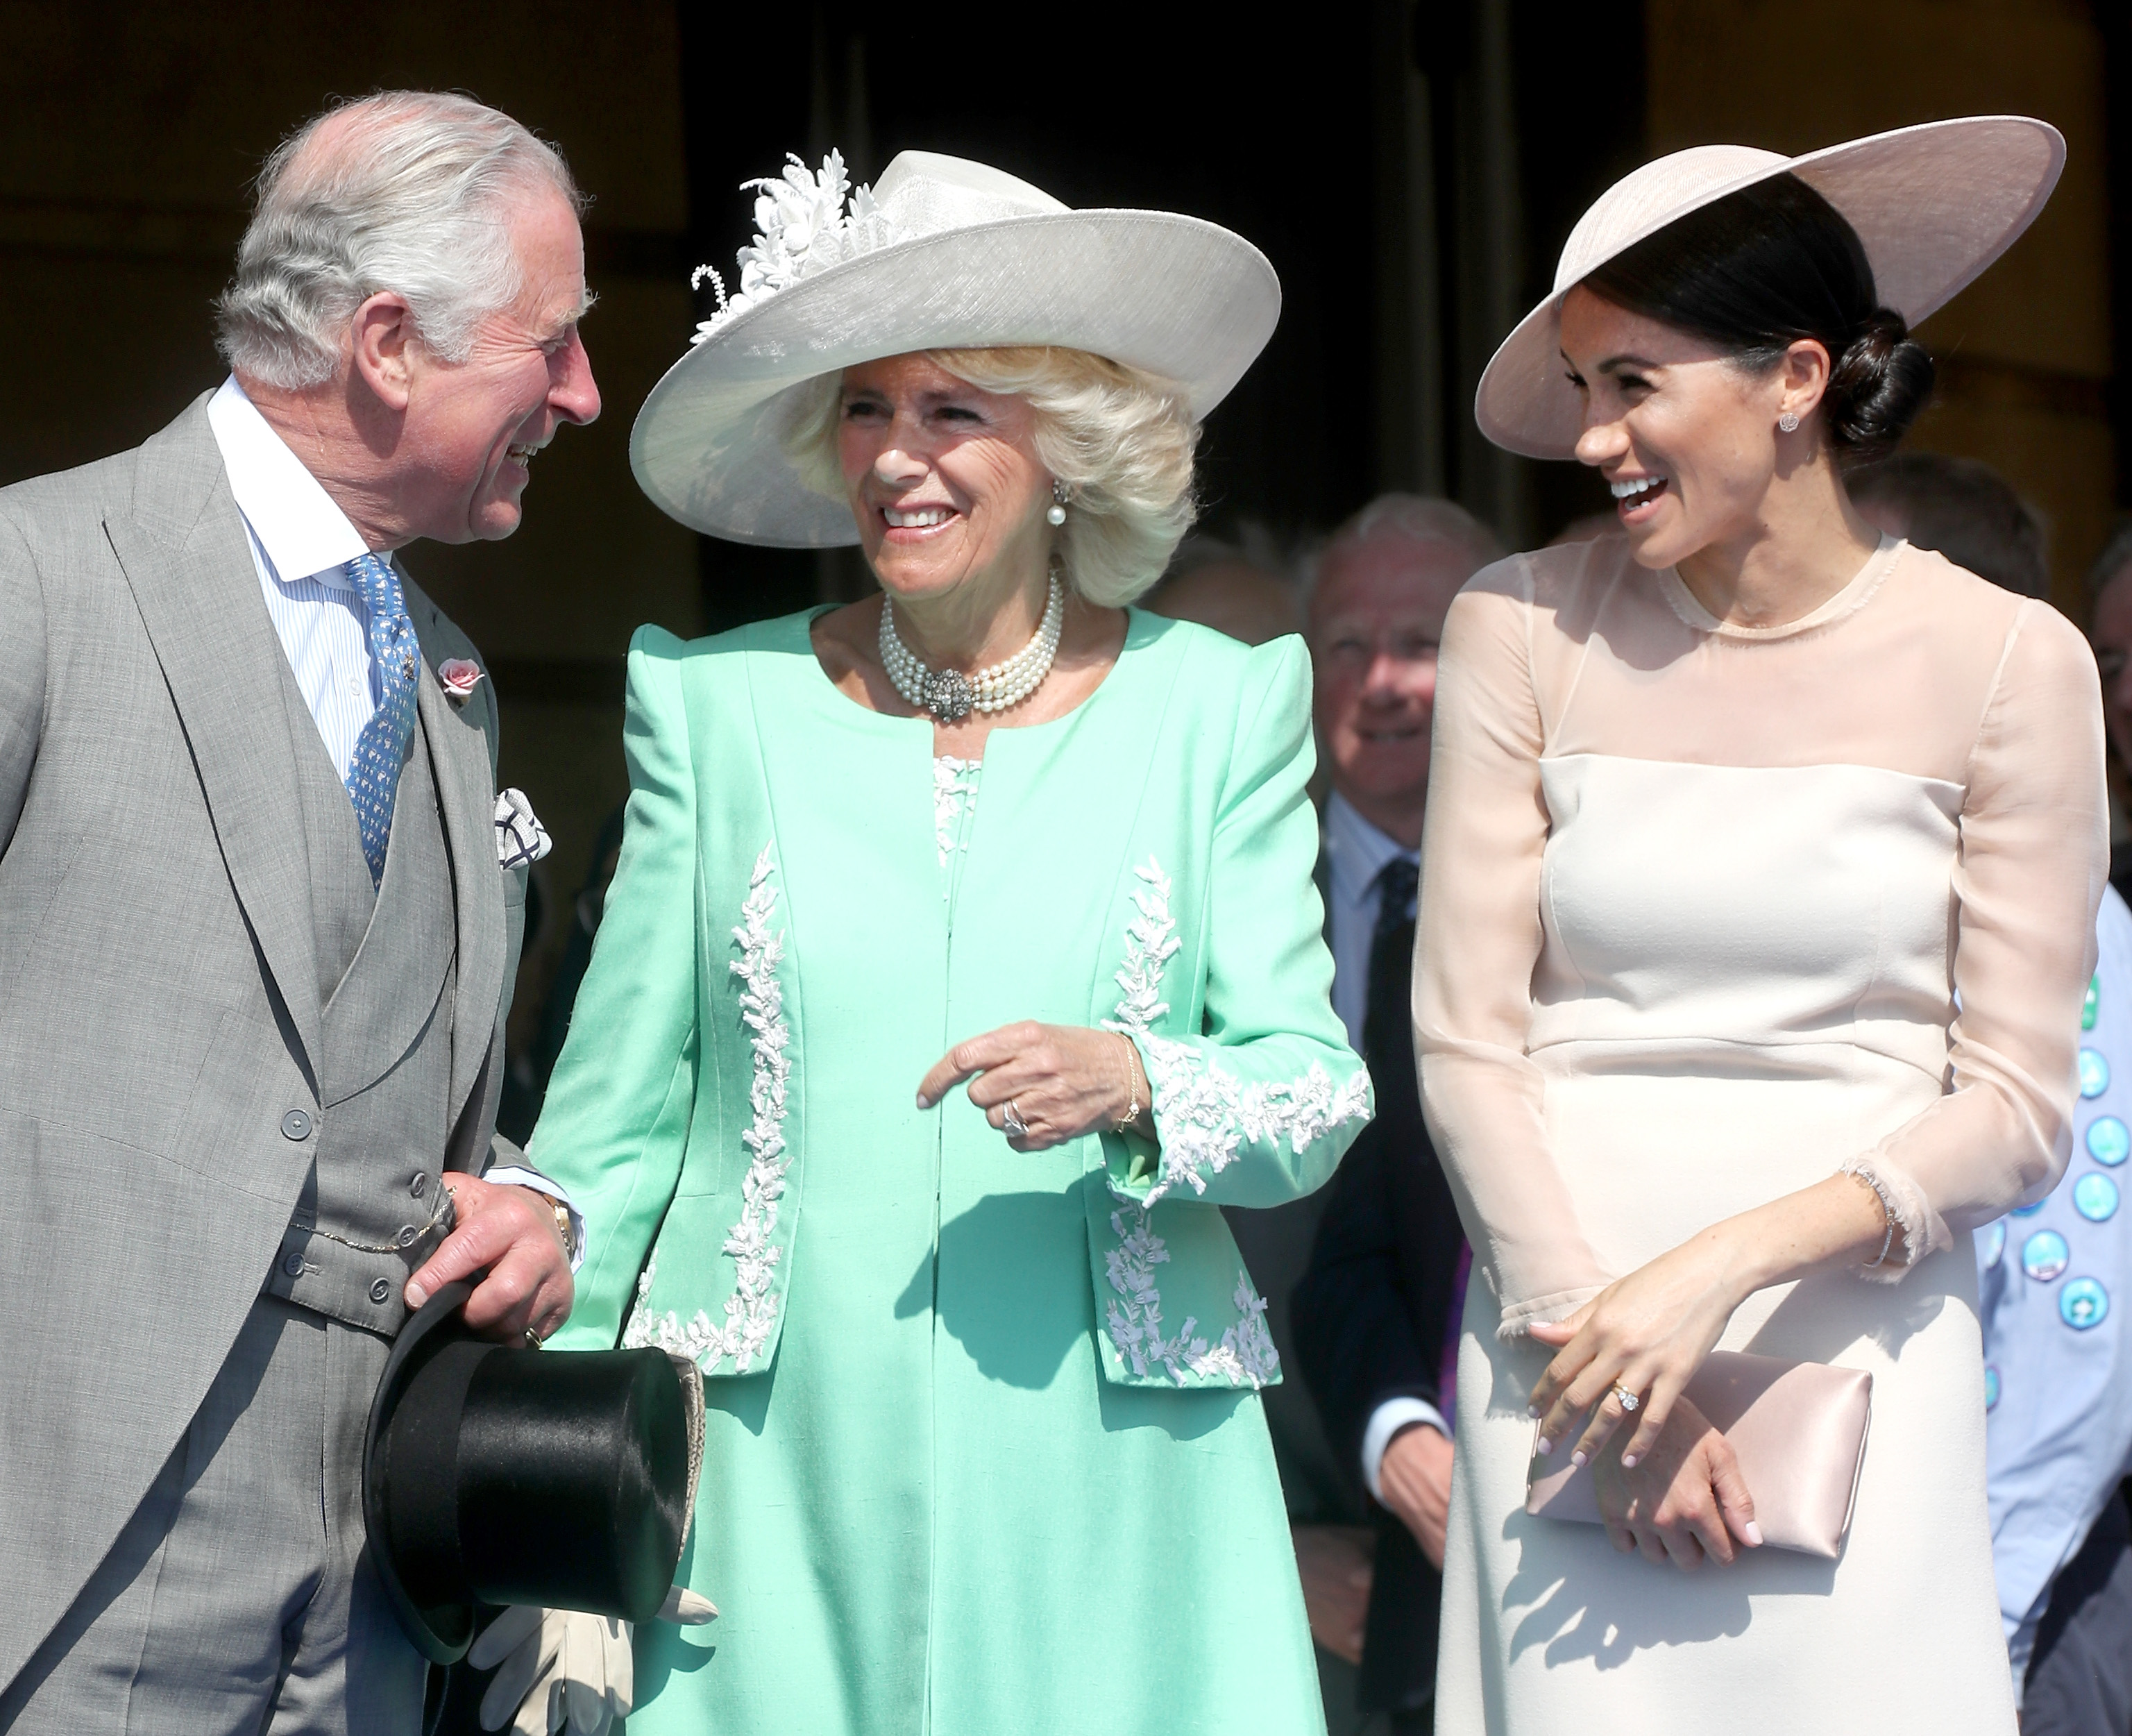 Prince Charles, Prince of Wales, Camilla, Duchess of Cornwall and Meghan, Duchess of Sussex attend The Prince of Wales' 70th Birthday Patronage Celebration held at Buckingham Palace on May 22, 2018 in London